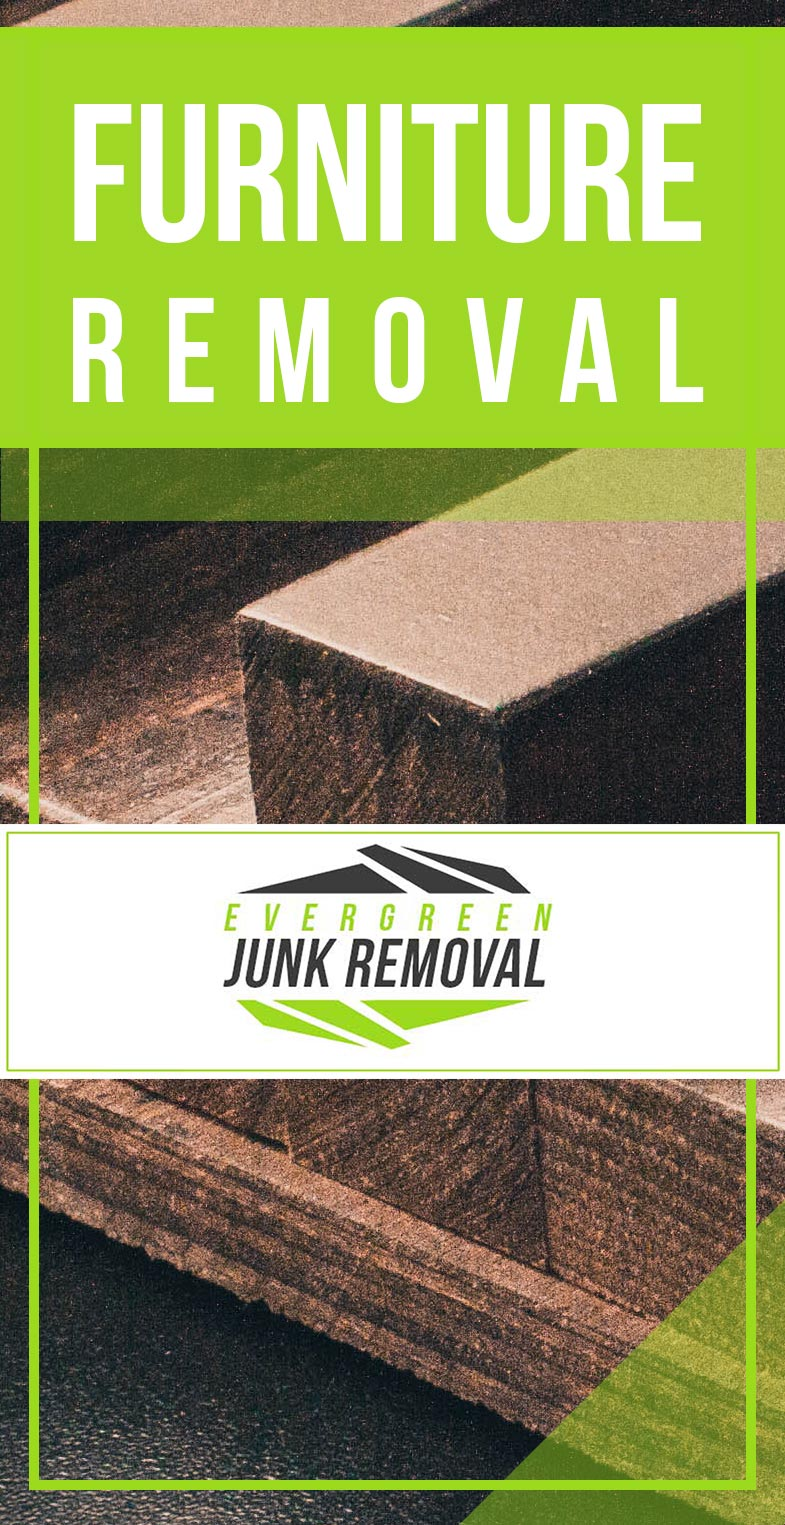 Johns Creek Furniture Removal